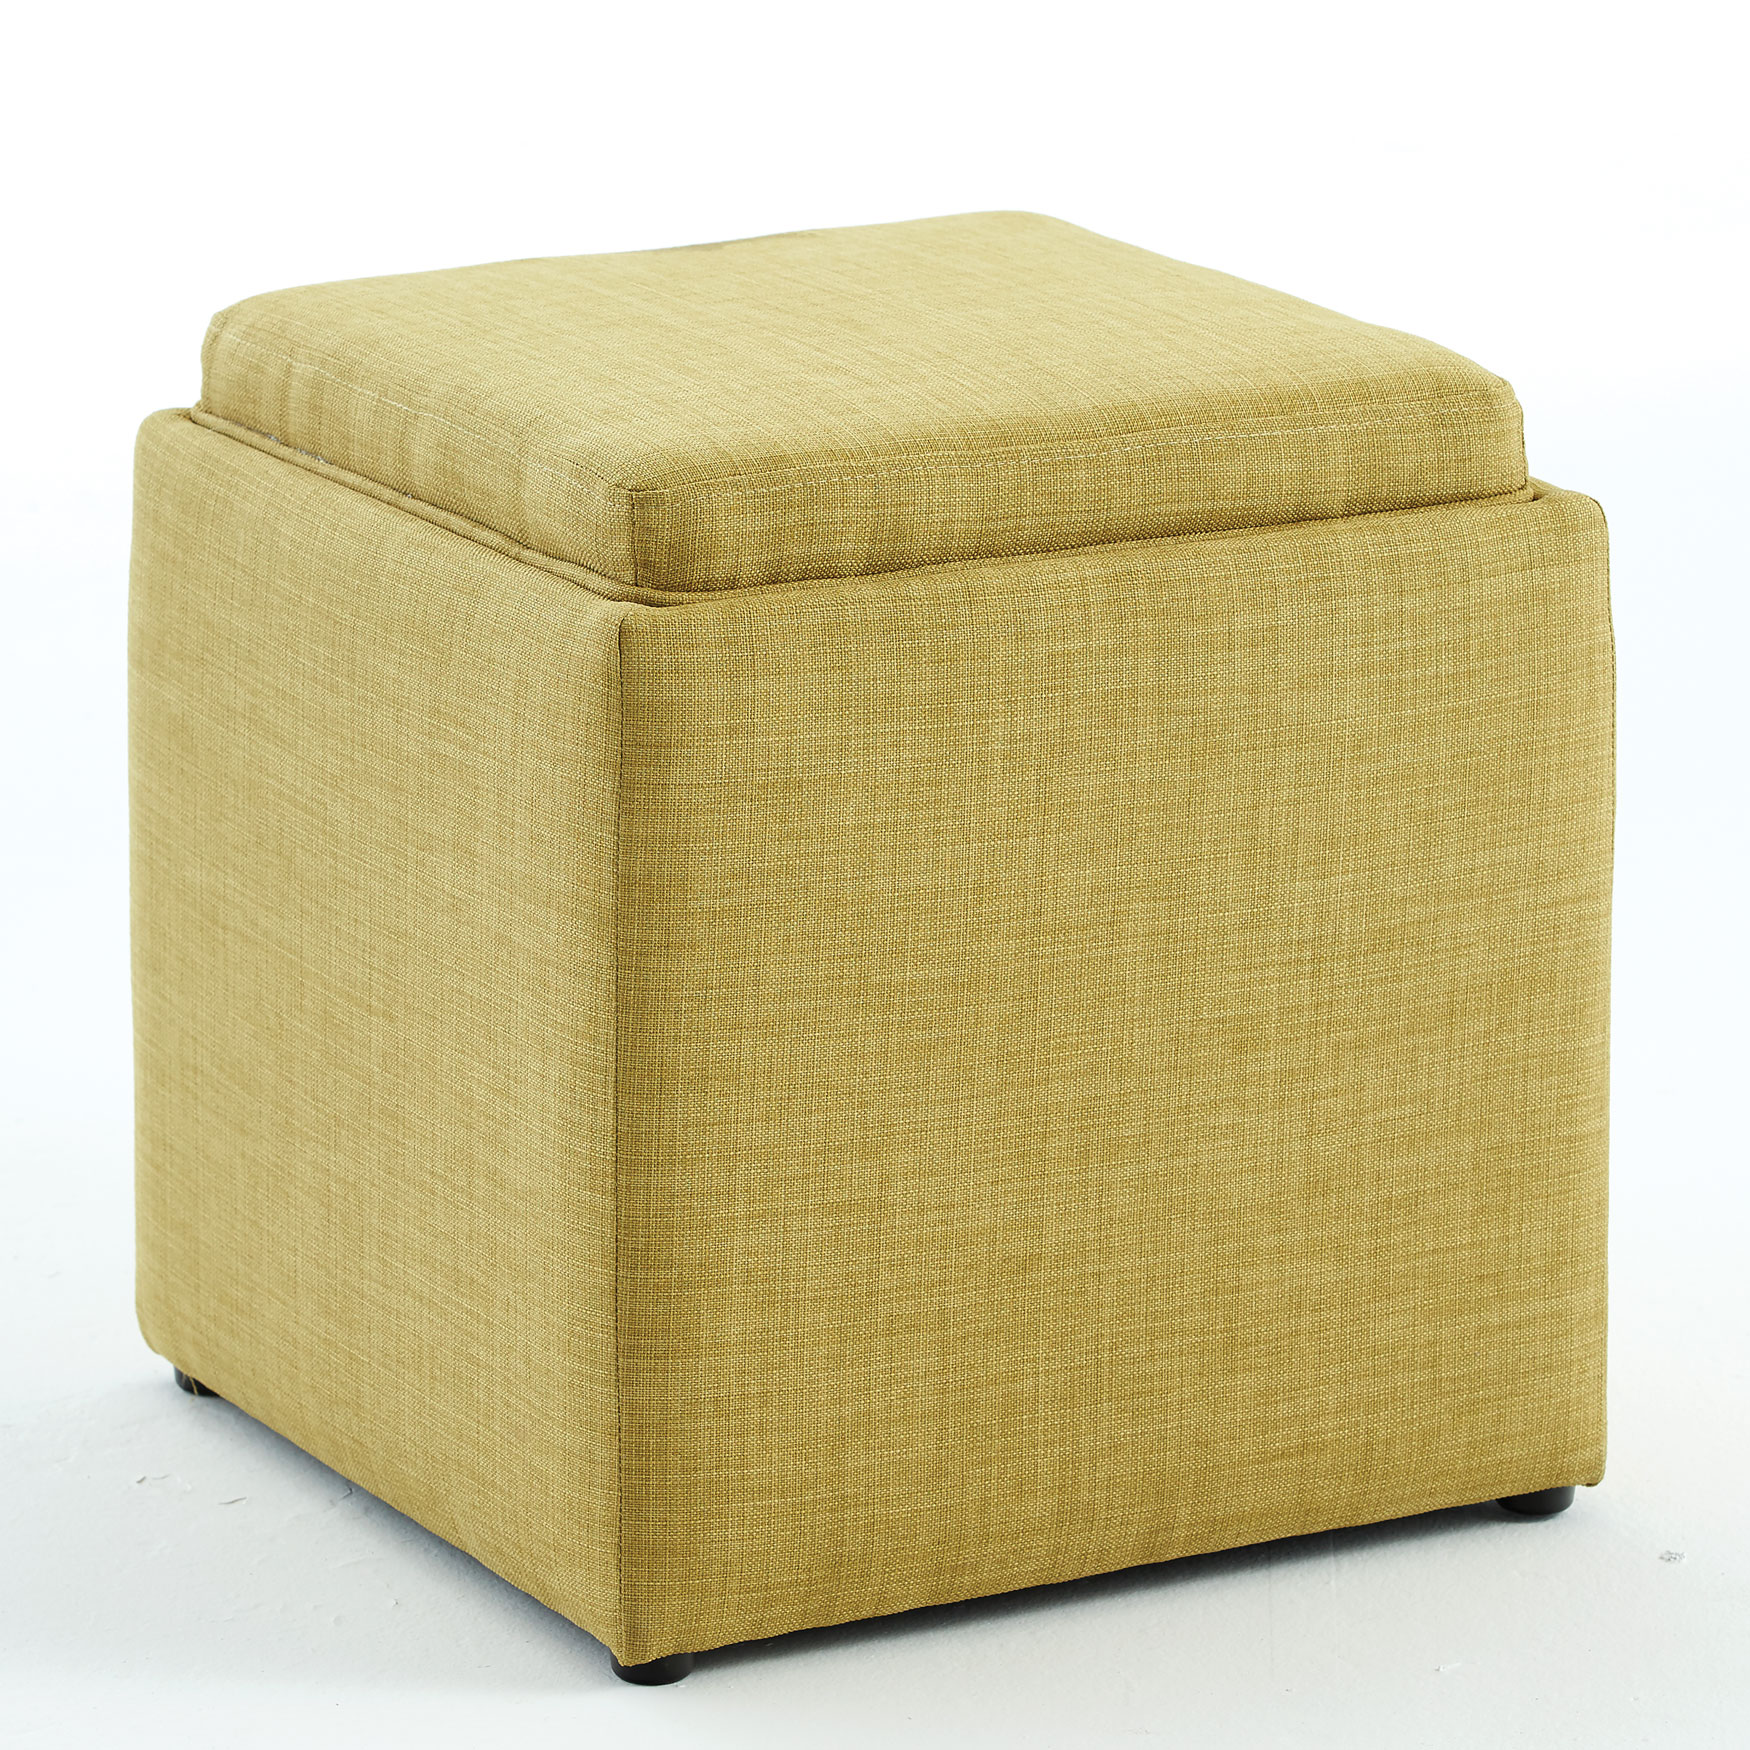 Storage Ottoman with Tray, KIWI